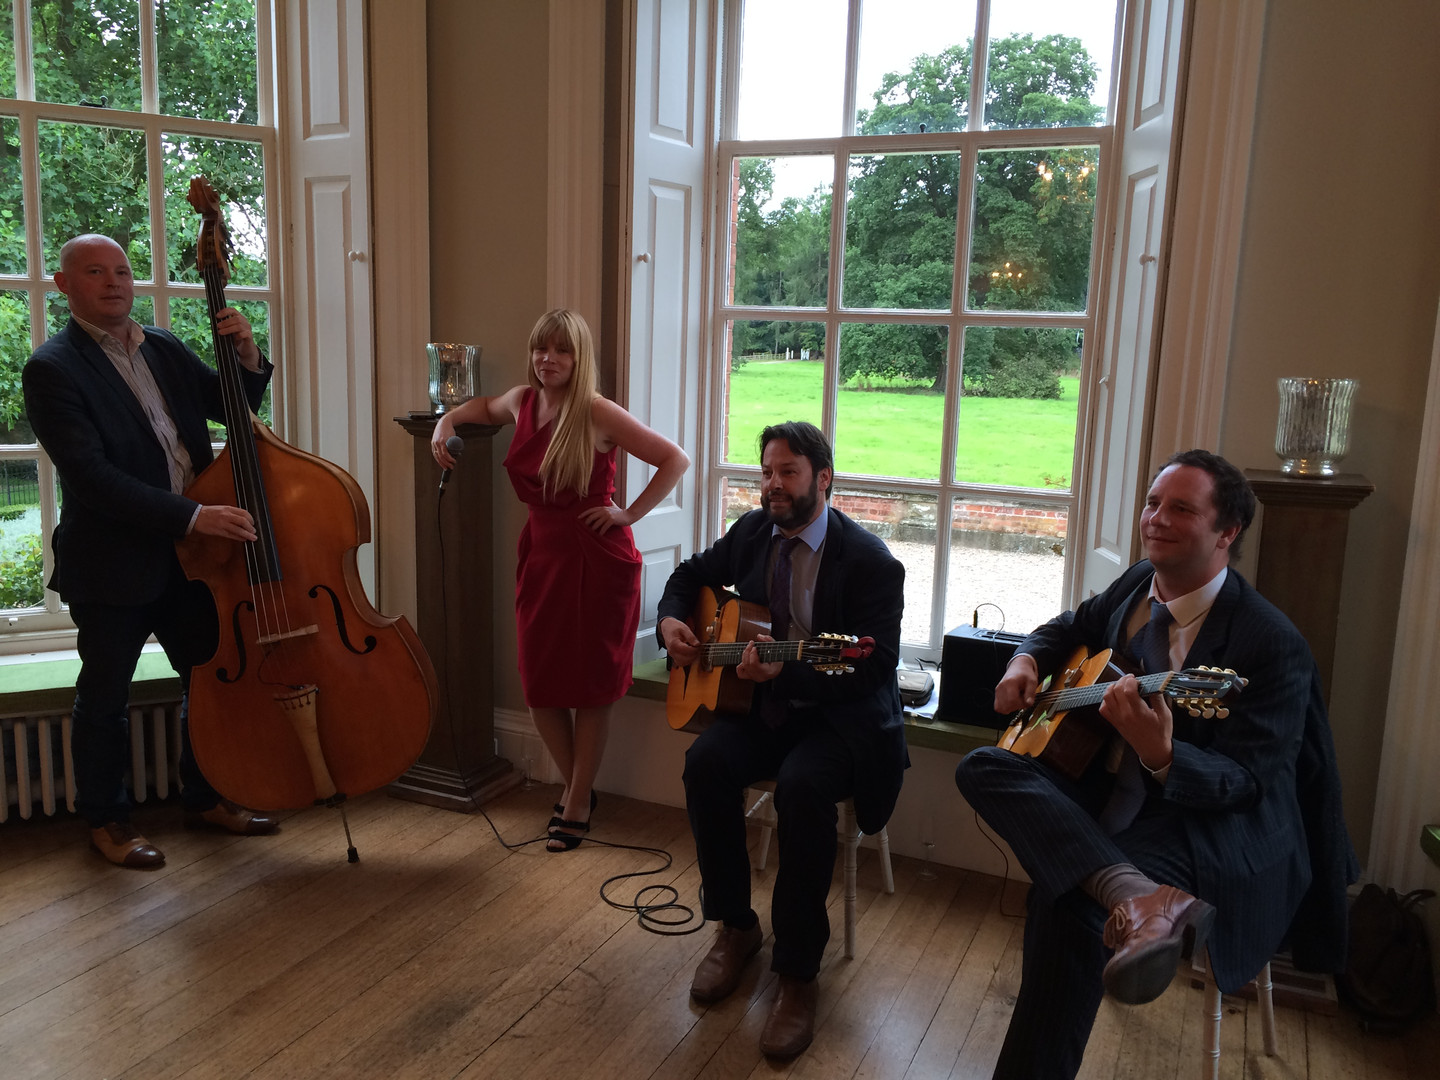 Jonny Hepbir Gypsy Jazz Quartet with Voc